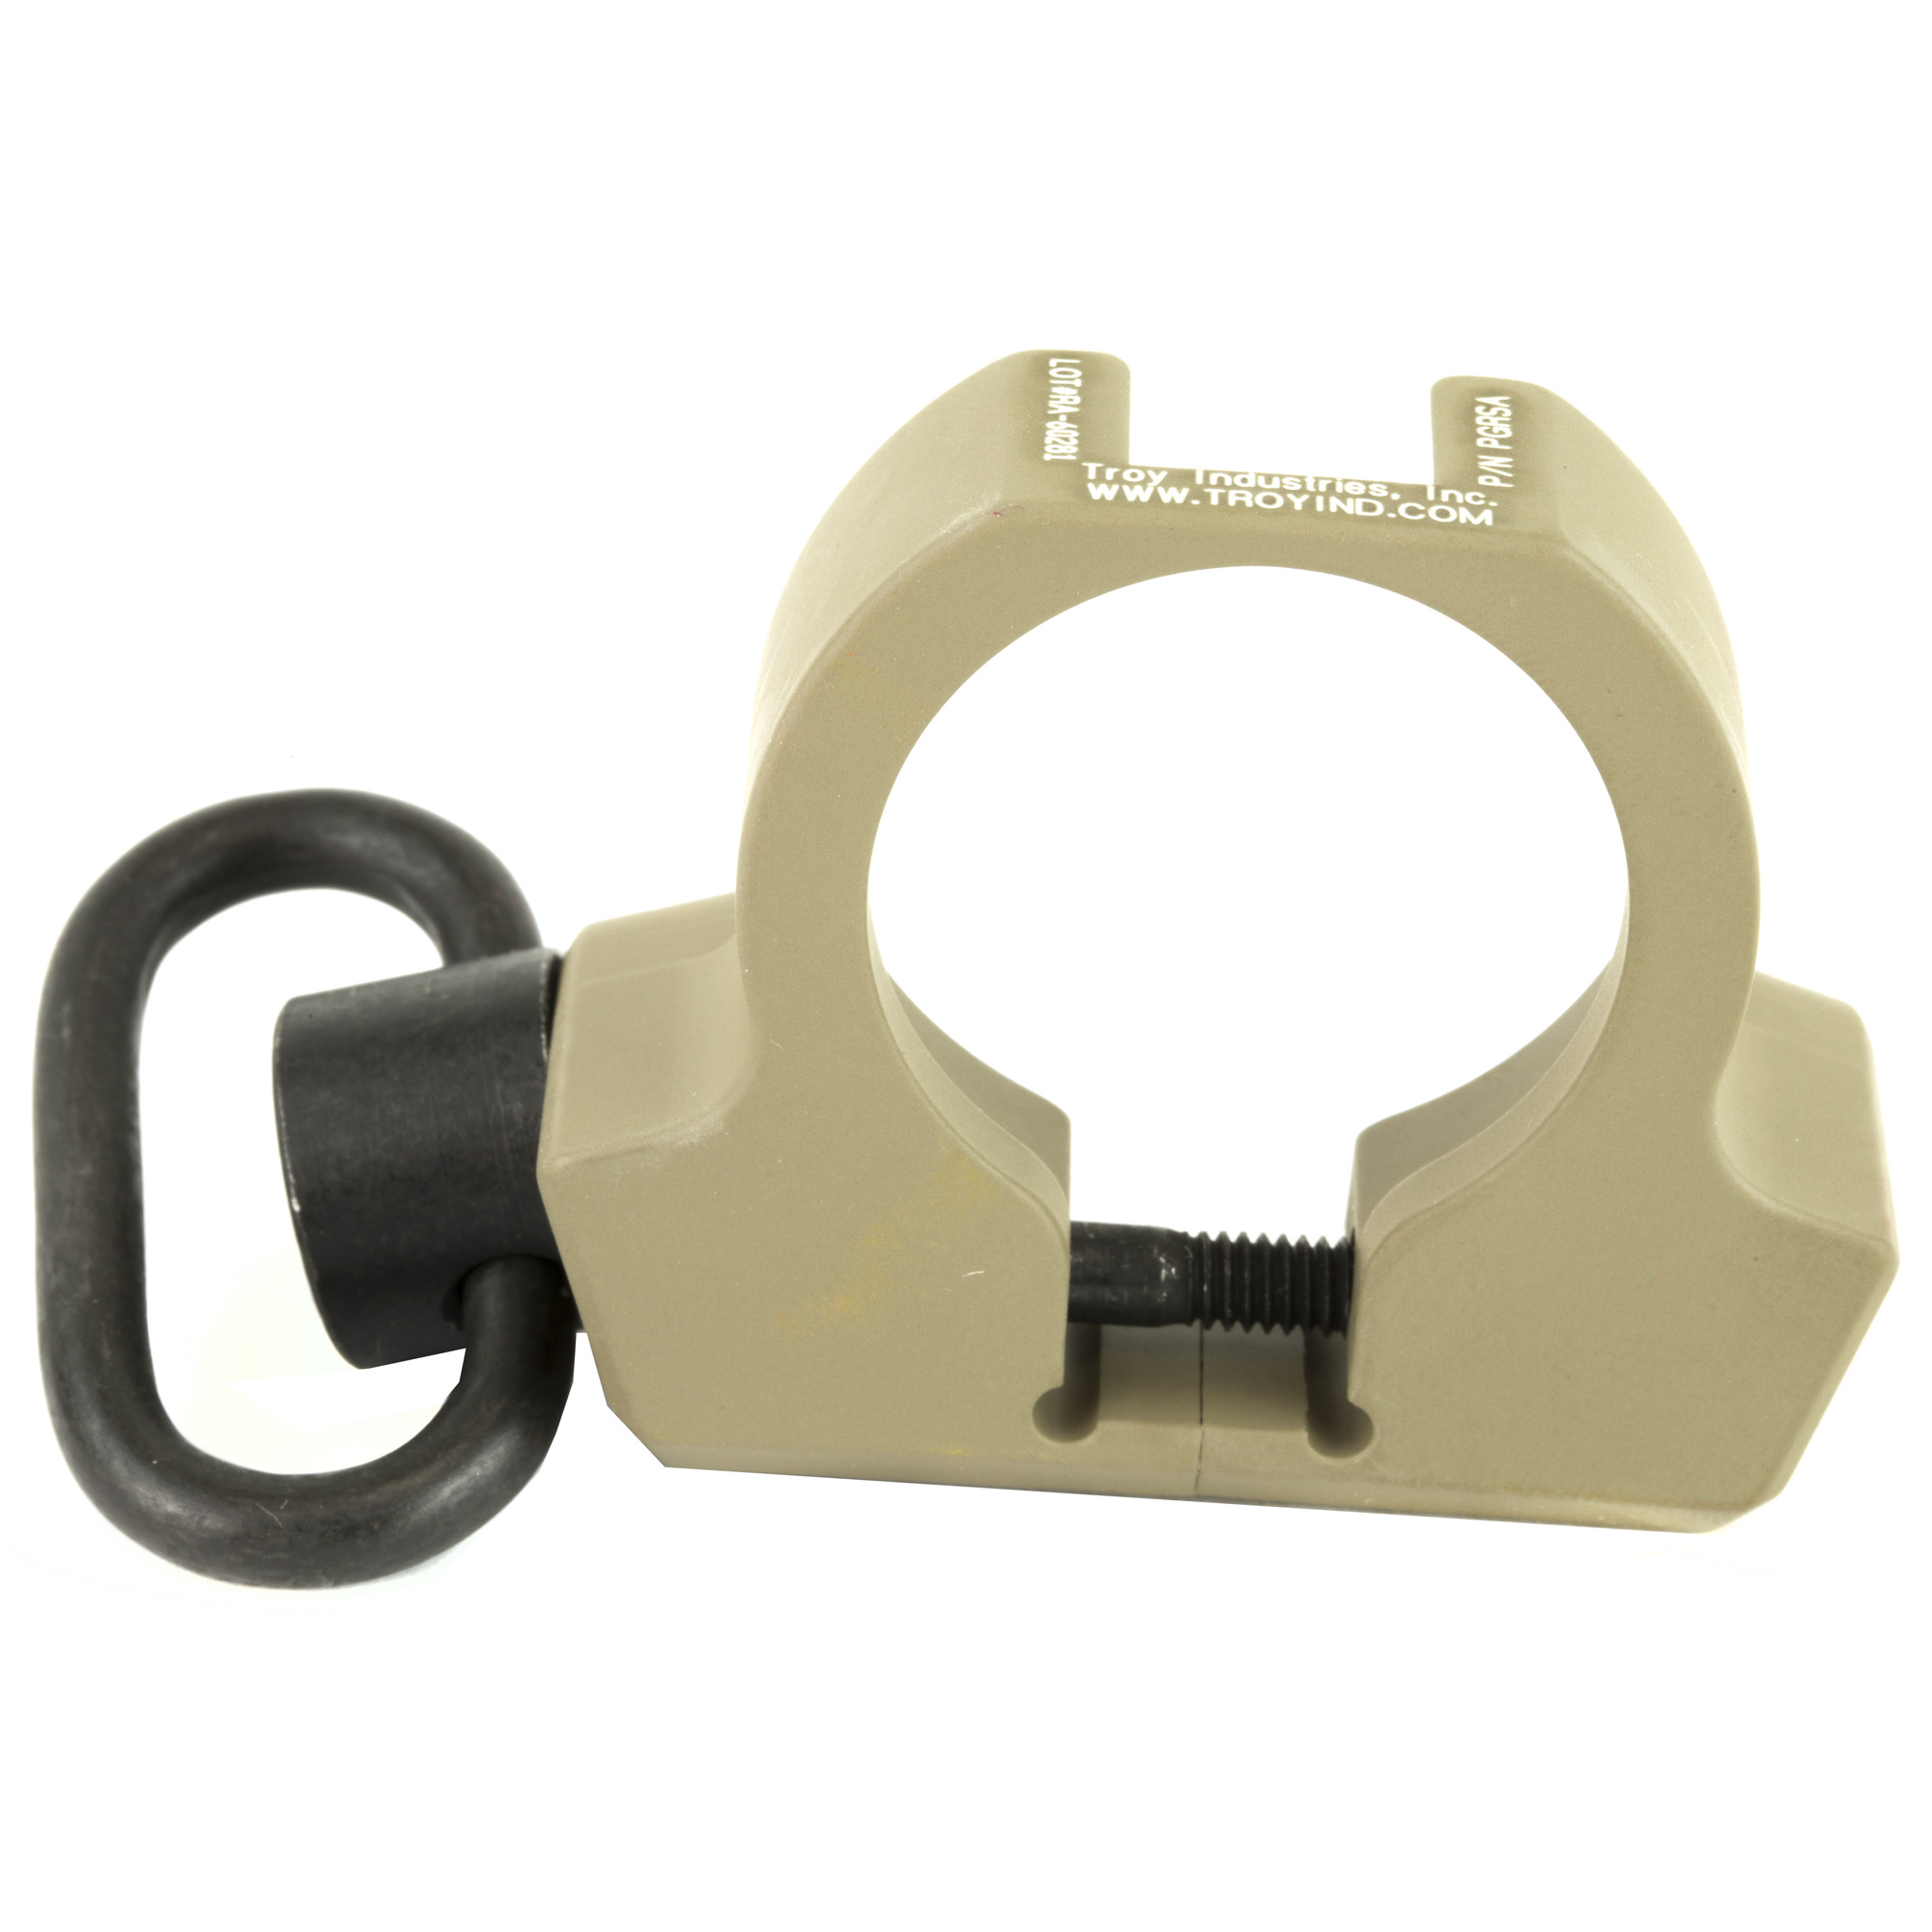 """The Pro Grade Rifle Sling Adapter enhances M4 stock reliability by sliding over the existing receiver extension"""" eliminating the chance of castle nut rotation. The Troy PGRSA allows the addition of an ambidextrous Q.D. swivel attachments without modifying the rifle. Constructed of hardened aircraft aluminum with a stainless push down button Q.D. swivel"""" this sling mount installs in less than two minutes with no gunsmithing required."""